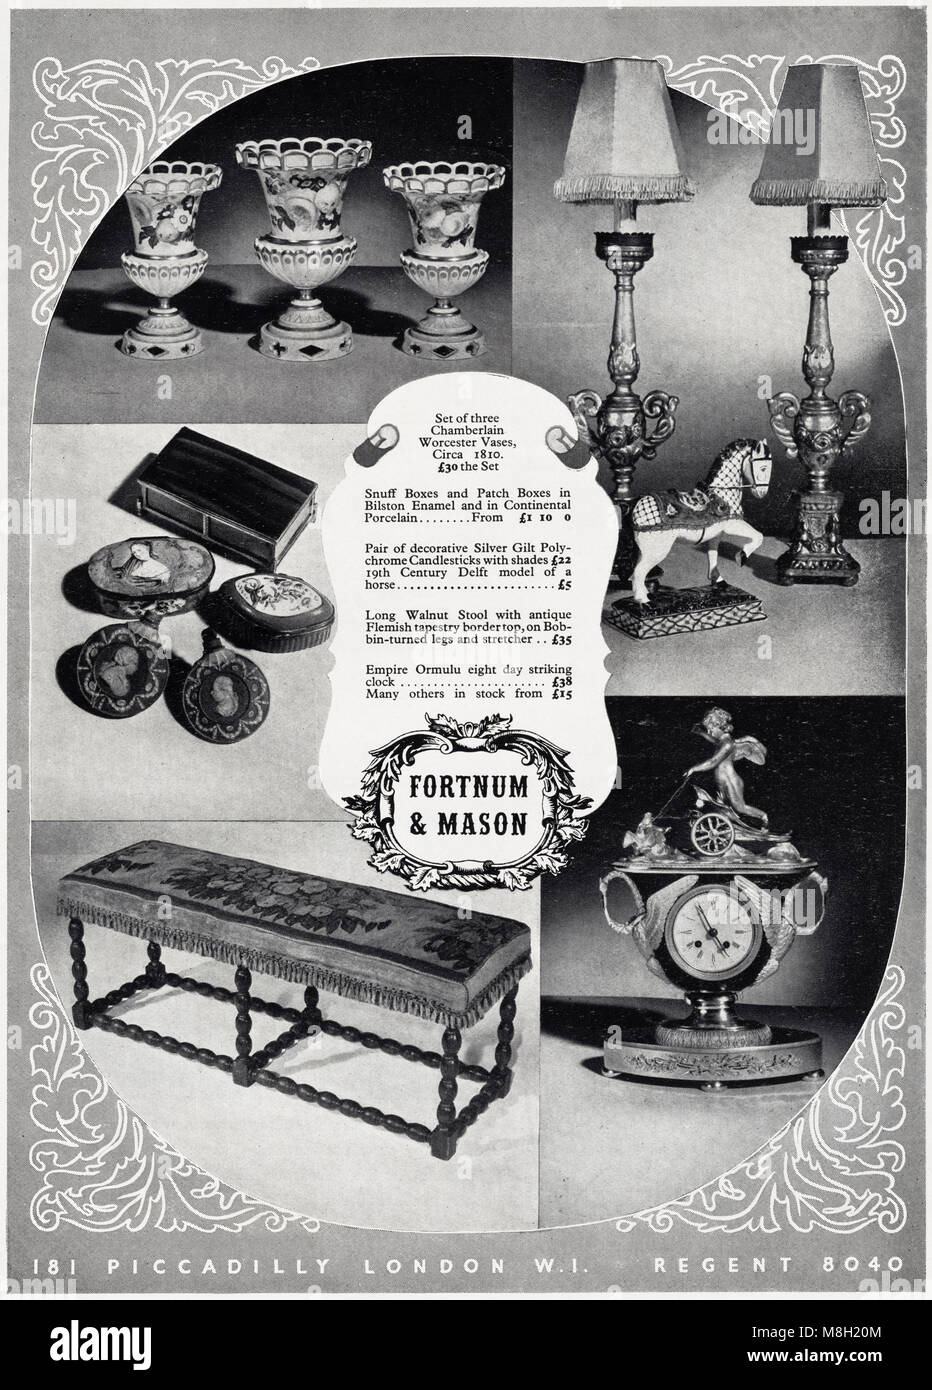 1950s Original Old Vintage Advertisement Advertising Luxury Household Items From Fortnum Mason Of Piccadilly